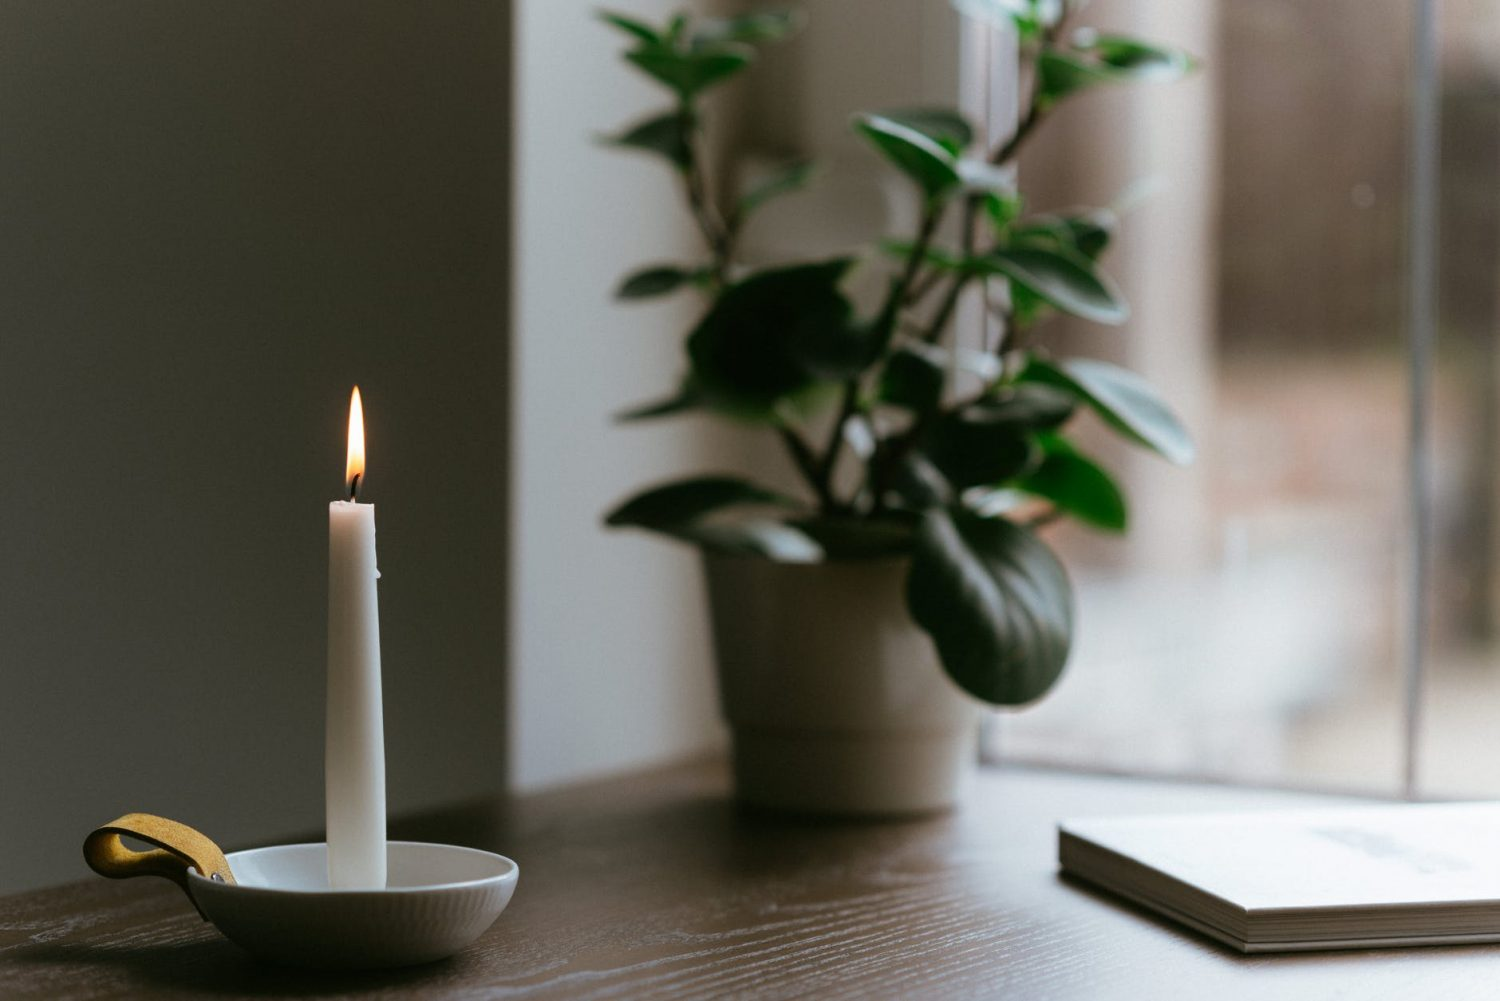 burning candle near potted plant on table